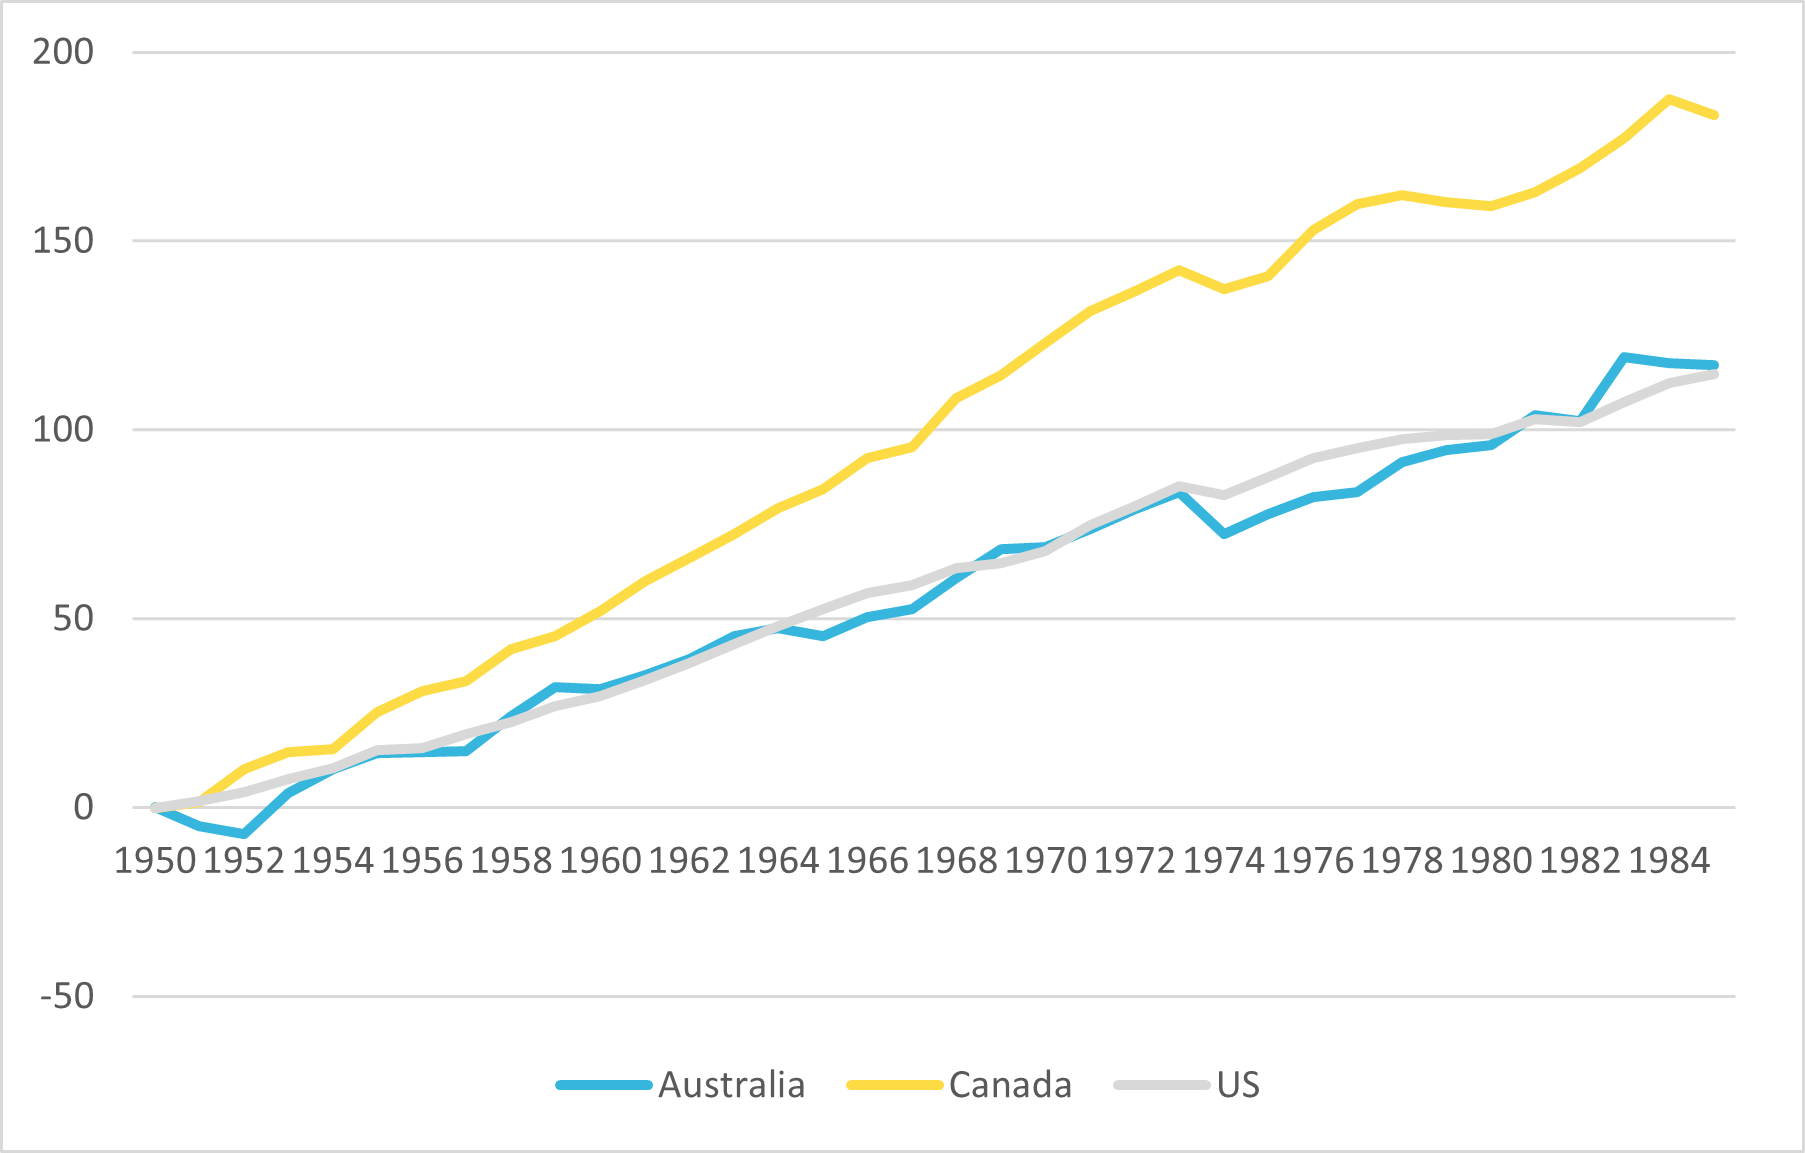 Figure 2 — Percent Increase in productivity per hour worked, Canada, Australia and the United States between 1950 to 1985